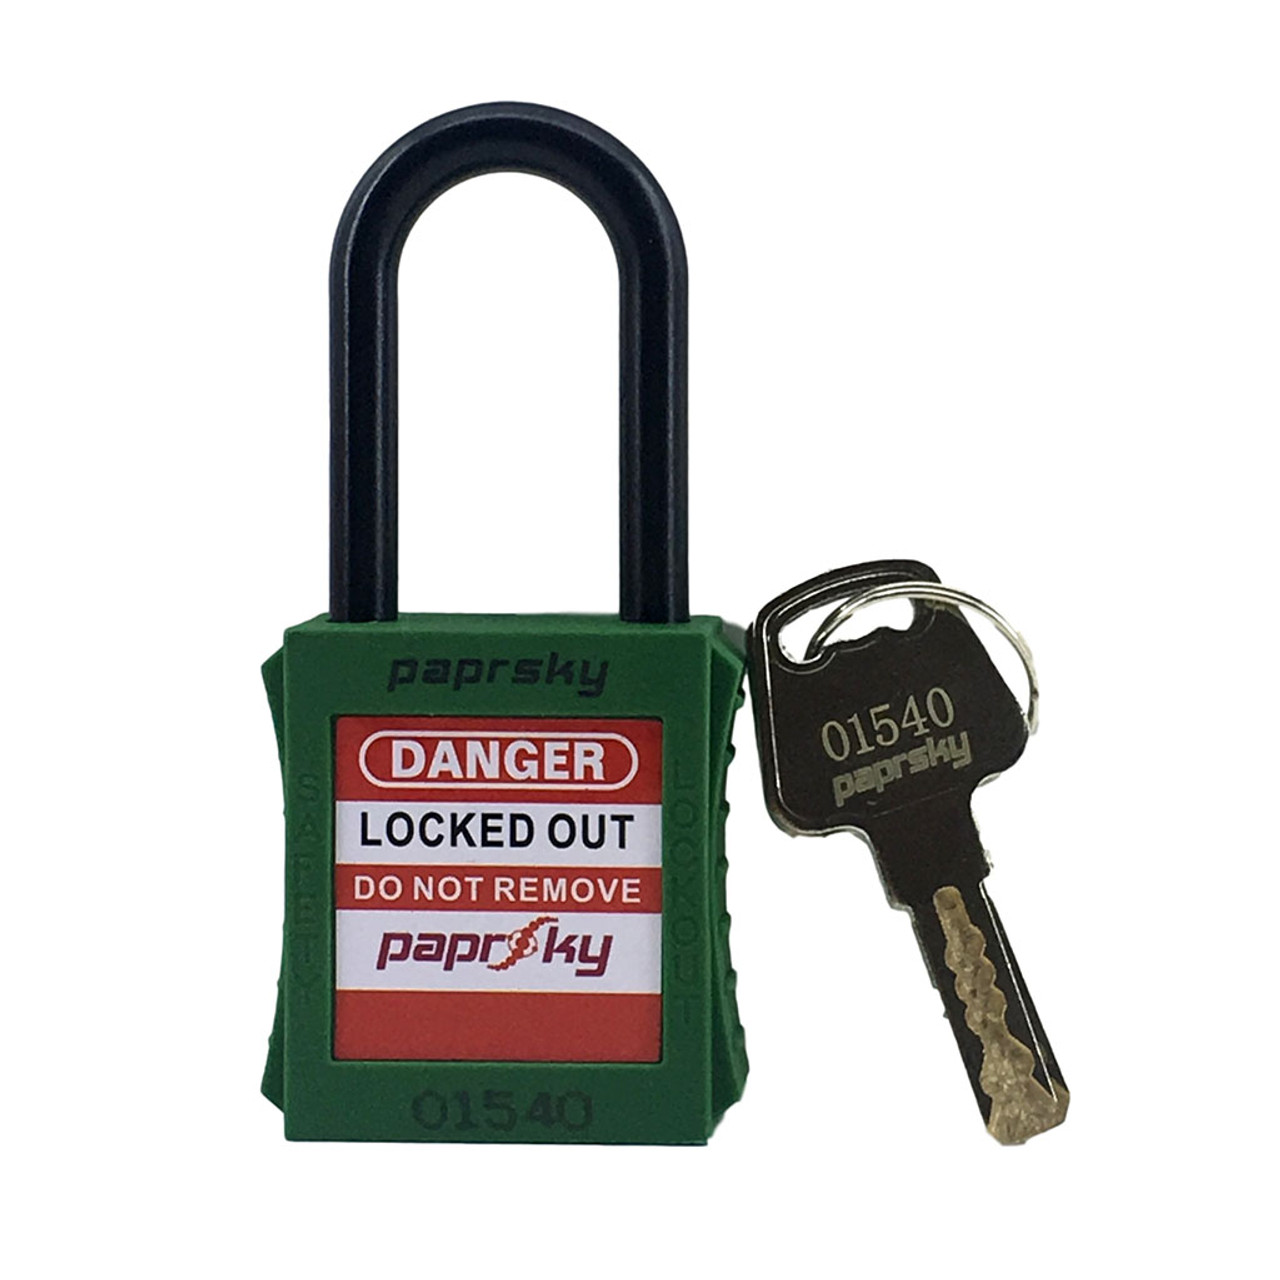 Lockout Padlock Green  regular Dielectric Nylon shackle PS-LOTO-PPNR-38